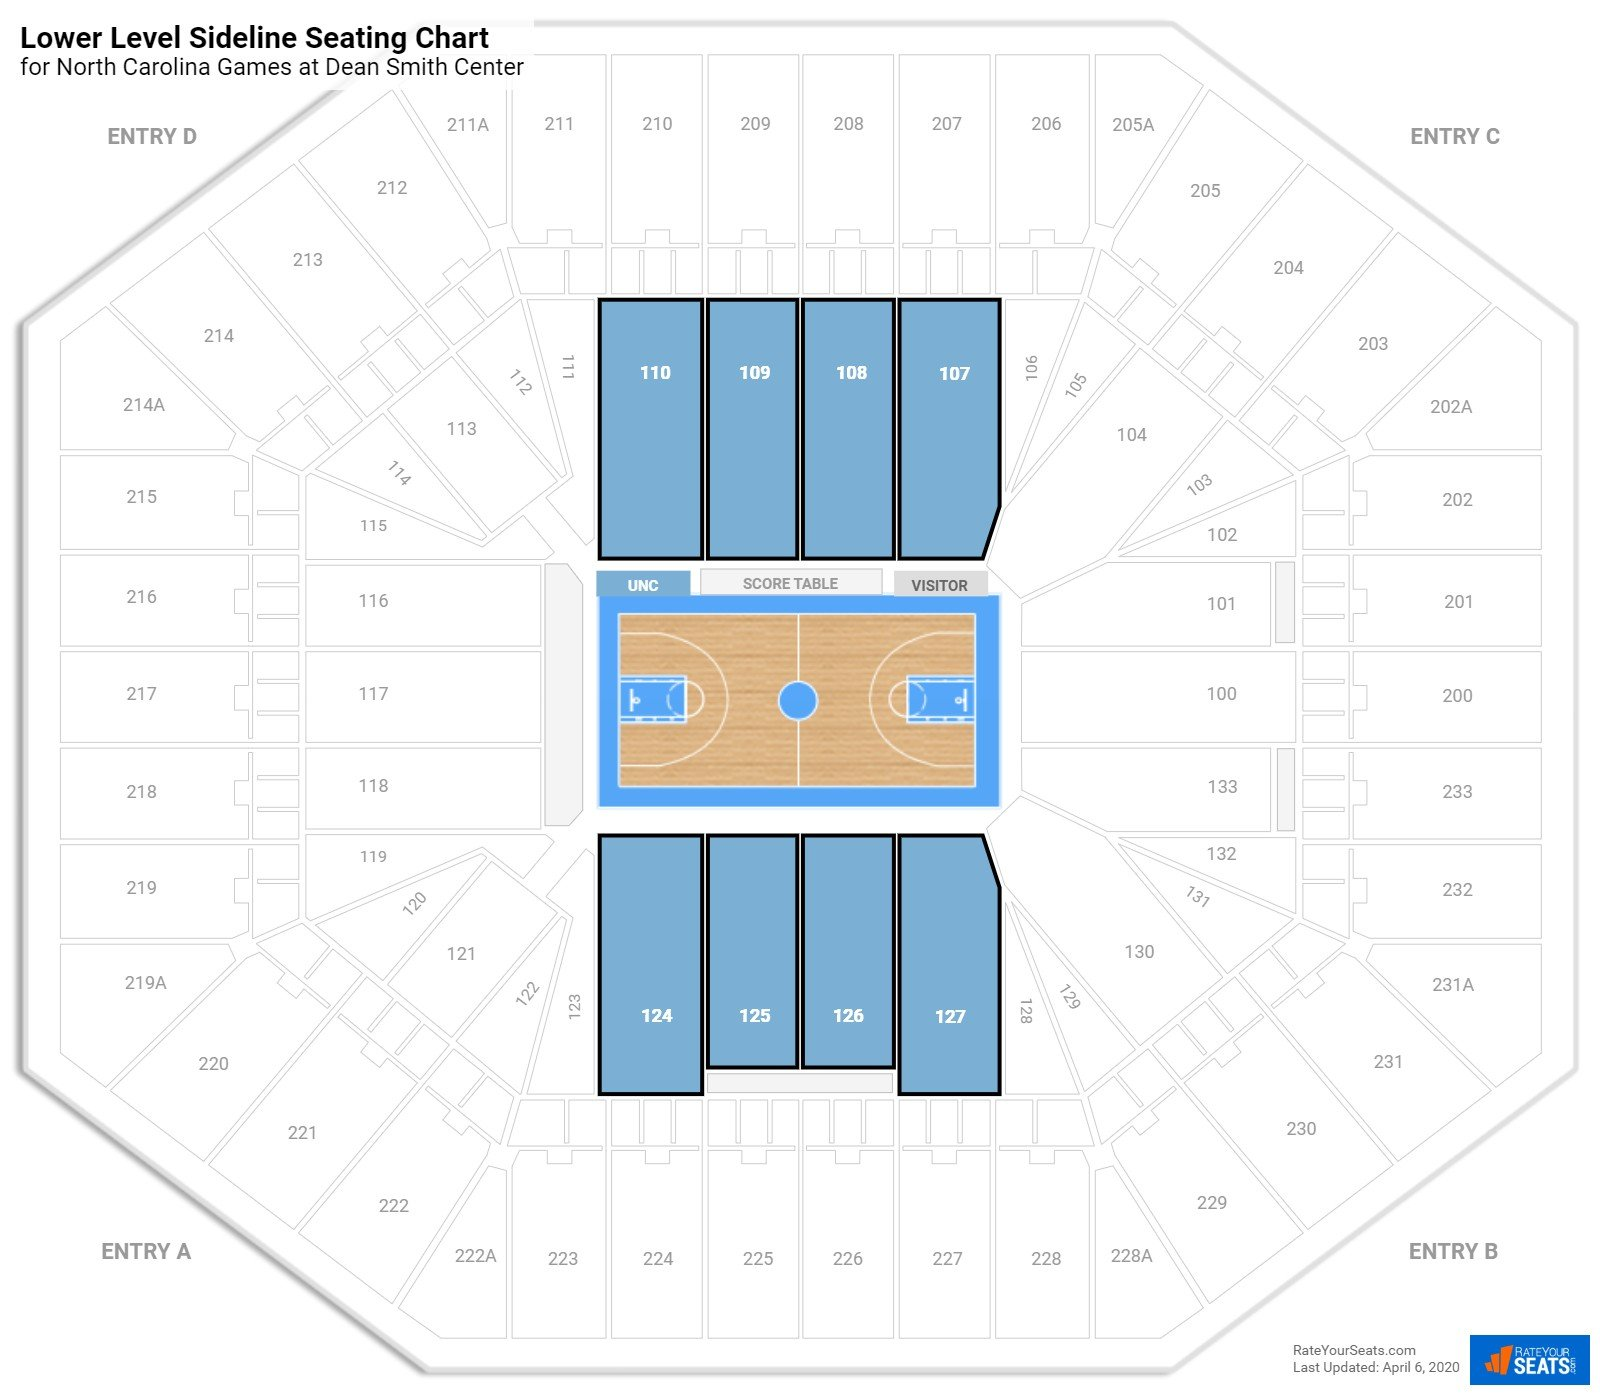 Dean Smith Center Lower Level Sideline Seating Chart